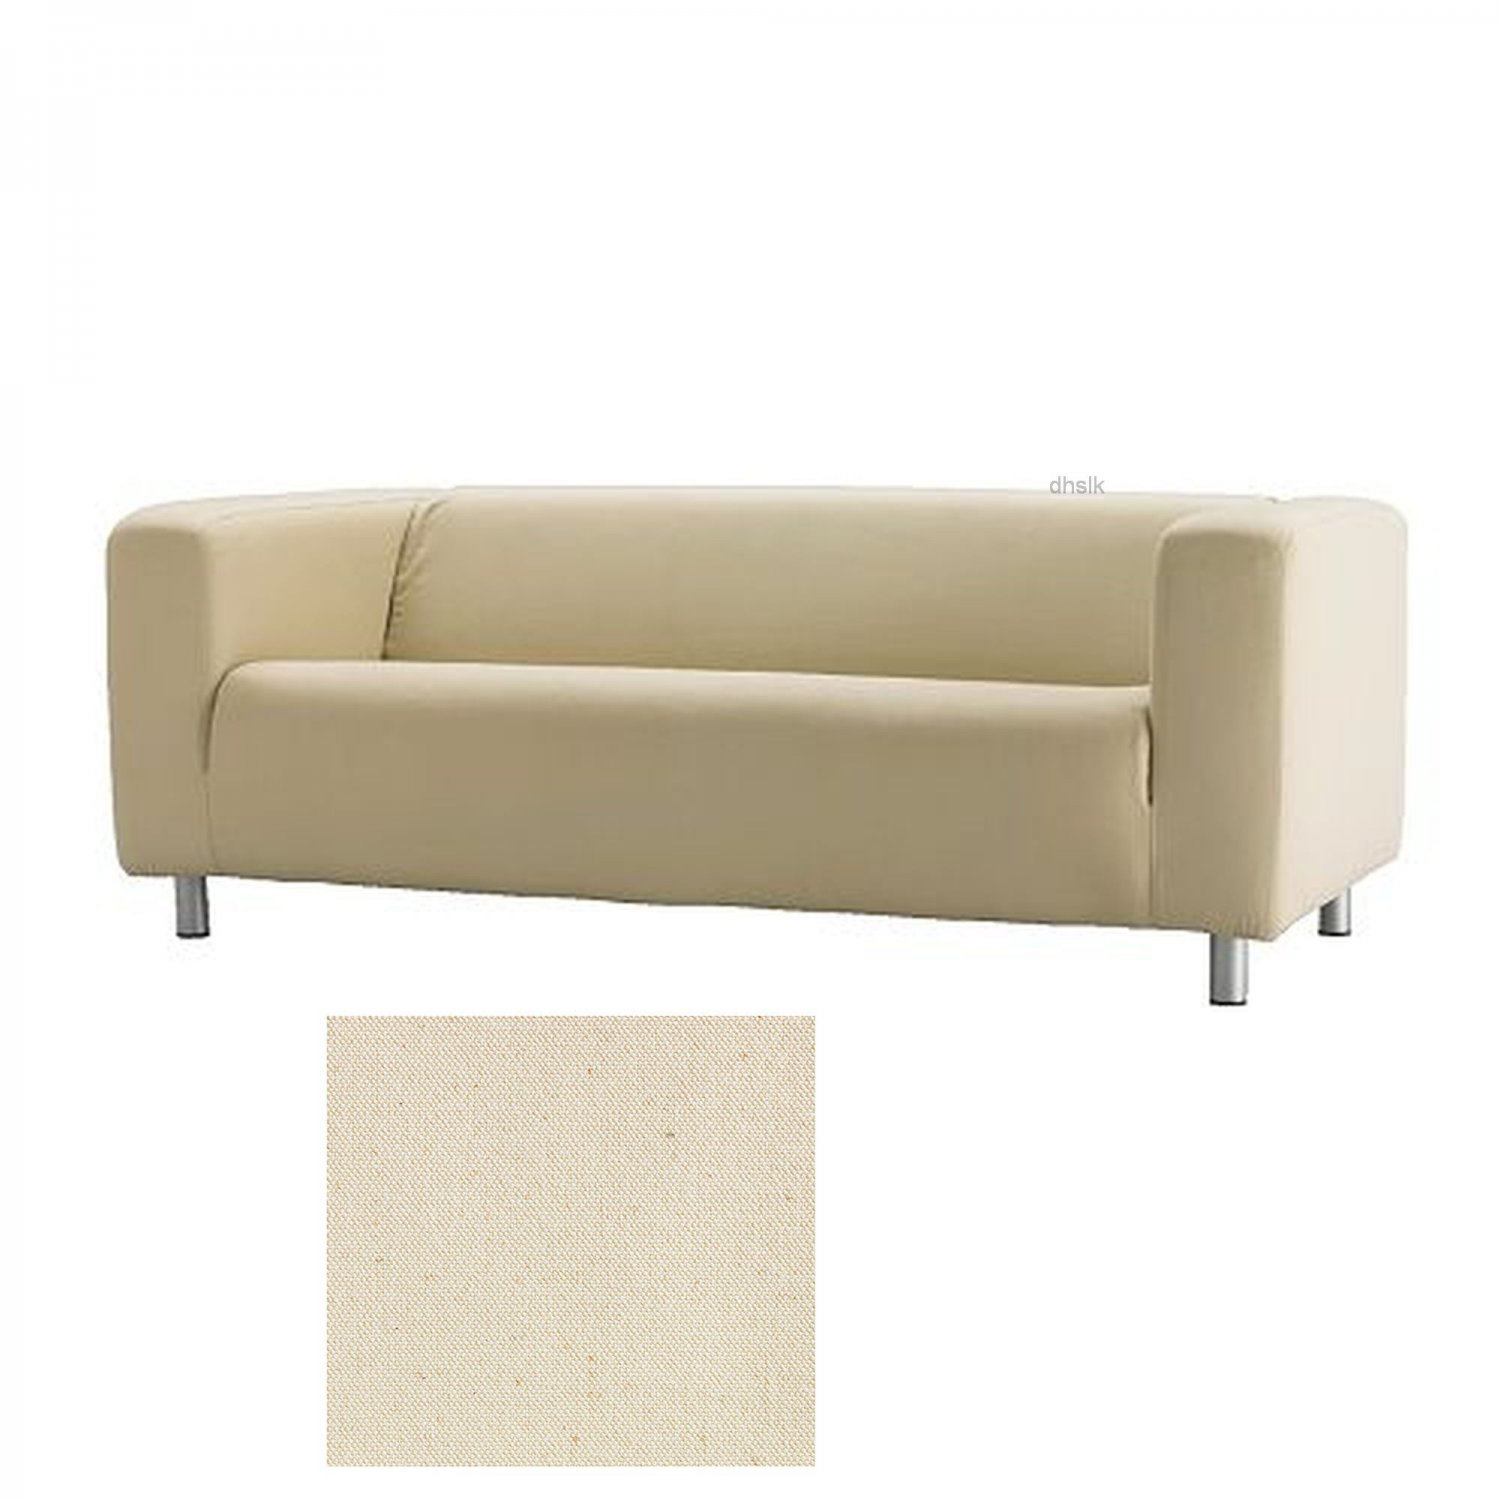 Ikea klippan sofa slipcover cover alme natural beige cotton - Klippan sofa ikea ...